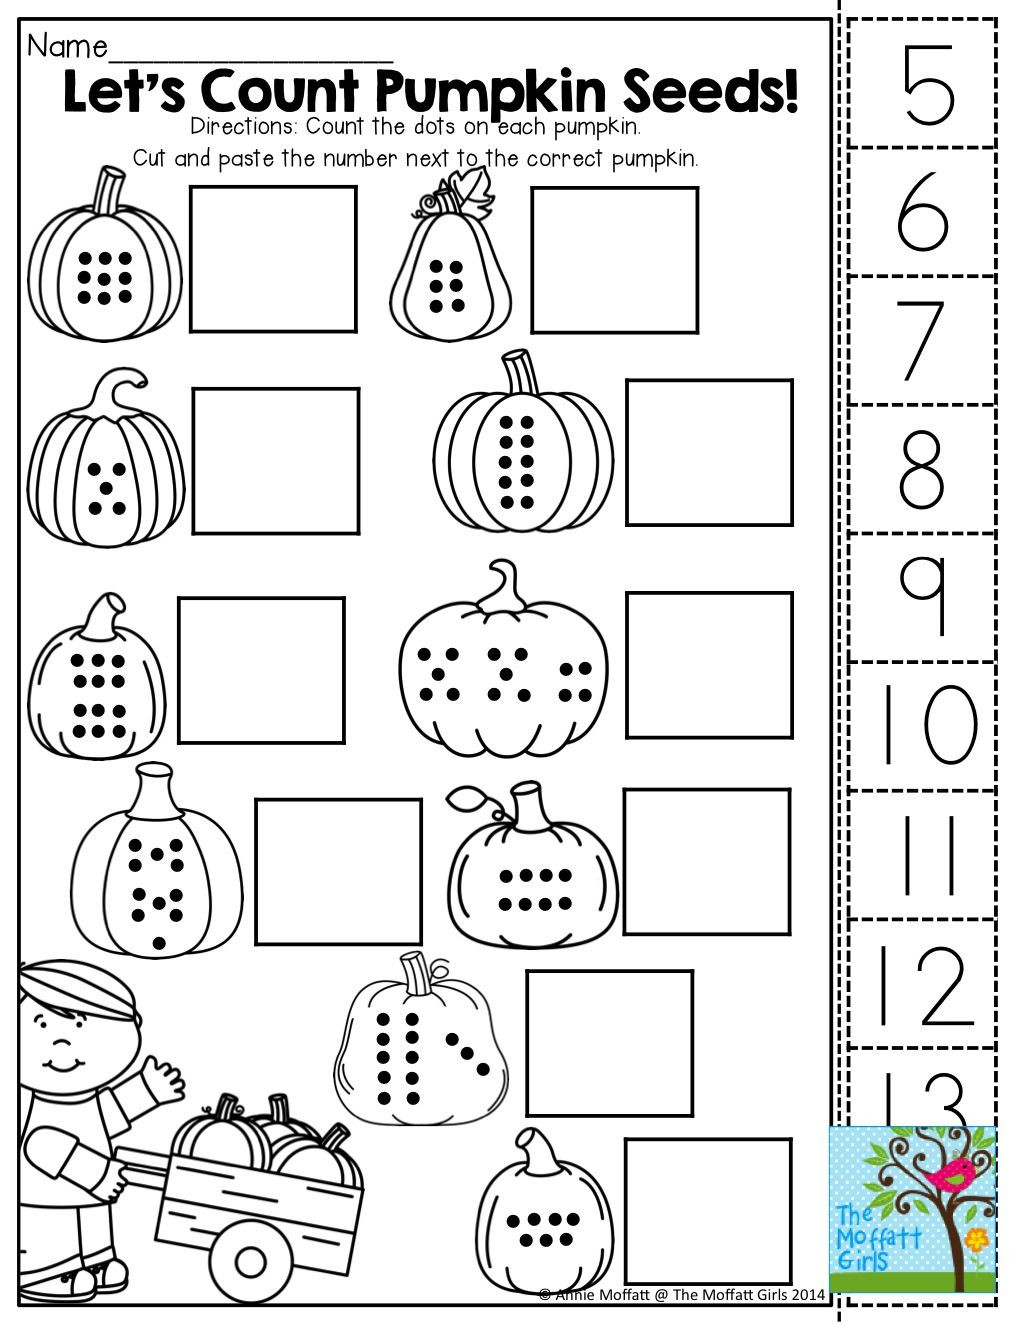 Free Kindergarten Halloween Worksheets Printable October Fun Filled Learning Resources